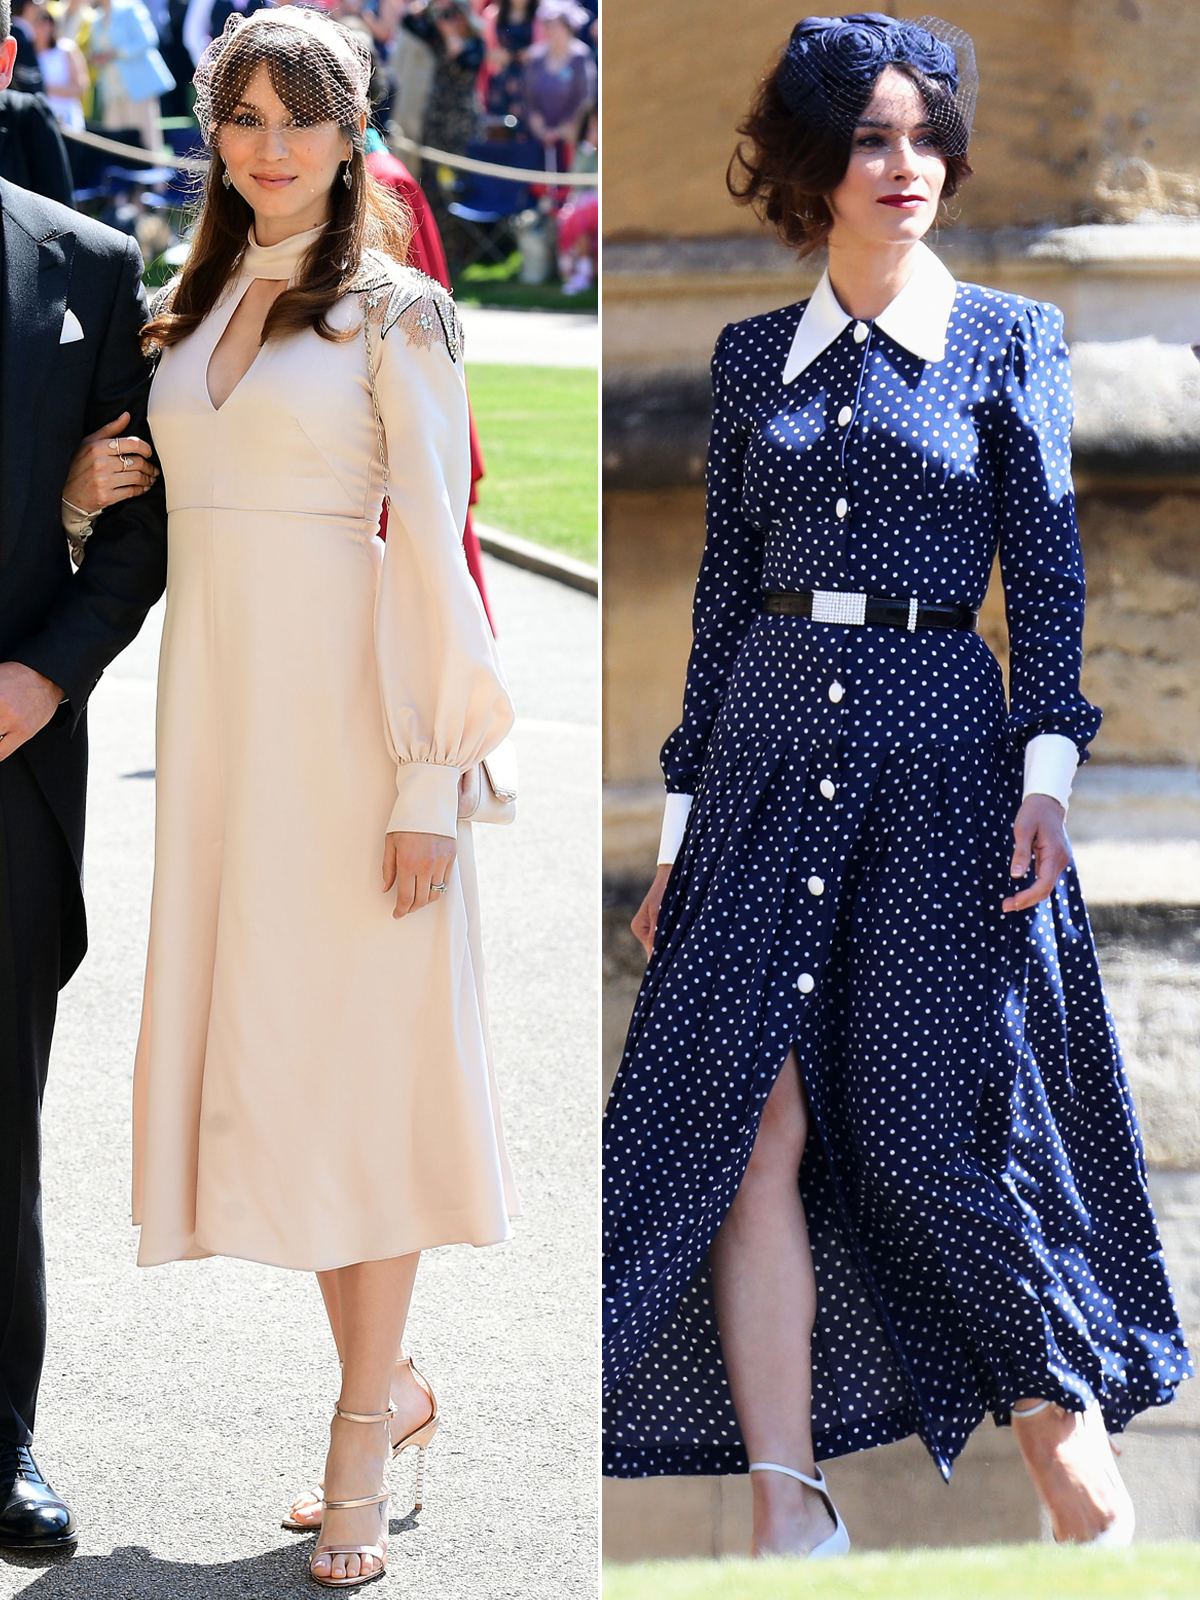 troian bellisario rests feet in slippers after royal wedding people com slippers after royal wedding